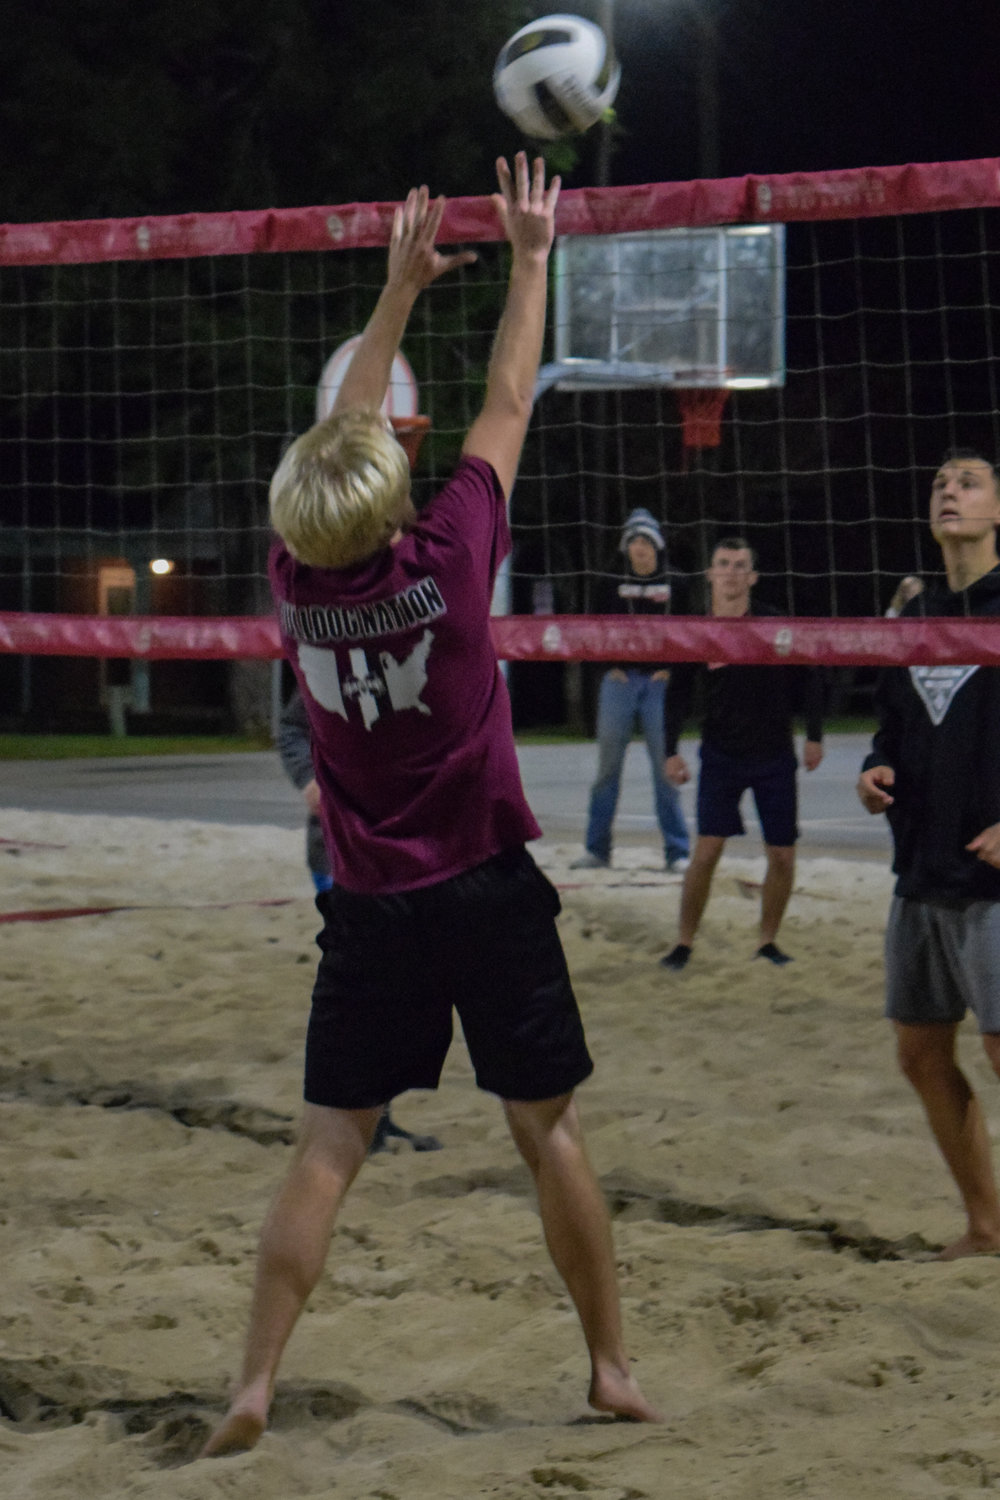 Clark hit the ball back over the net after the serve to begin the volley.